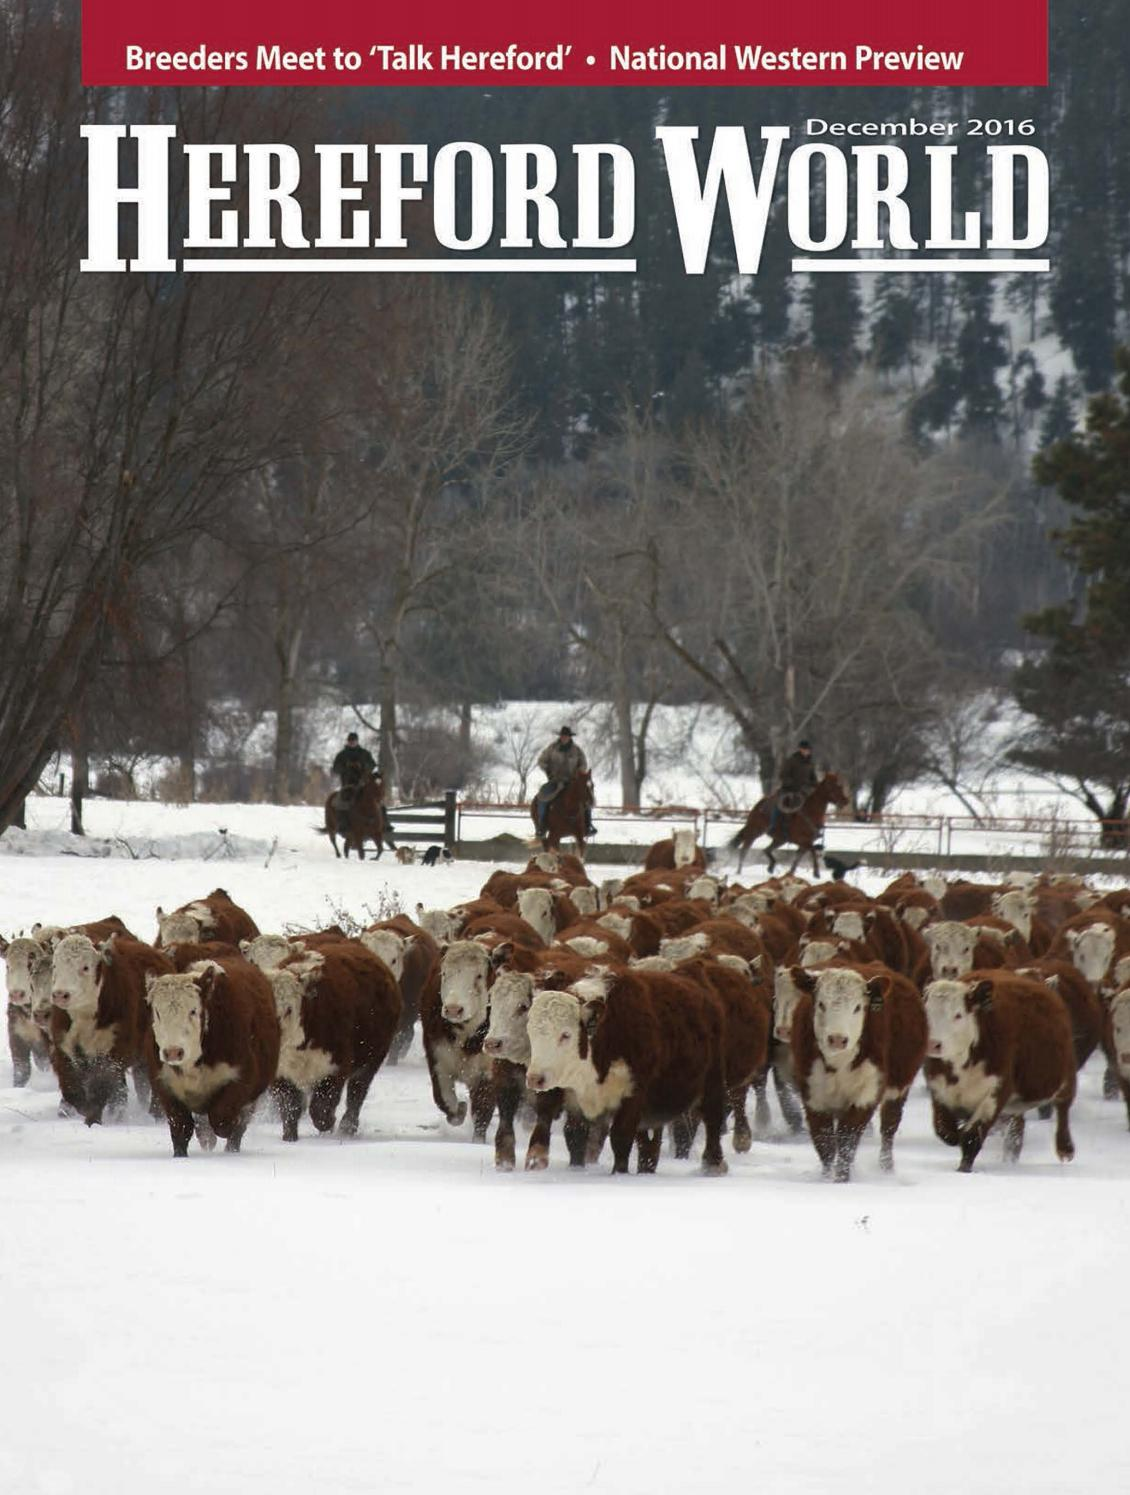 December 2016 Hereford World by American Hereford Association and Hereford  World - issuu aa89cd2d3cb8